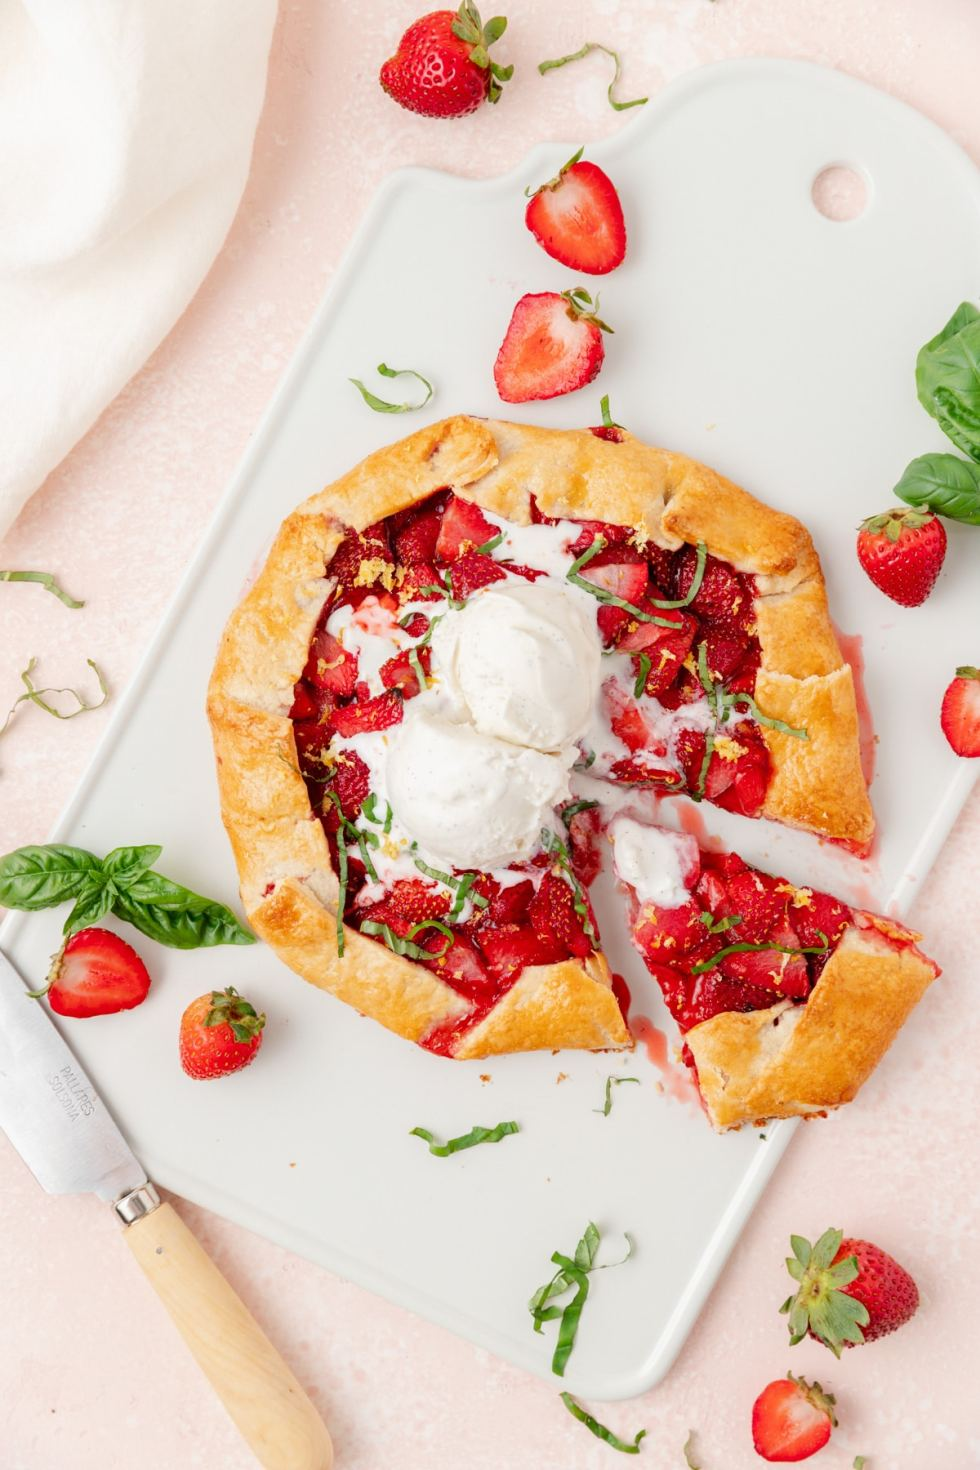 strawberry basil galette with ice cream on top